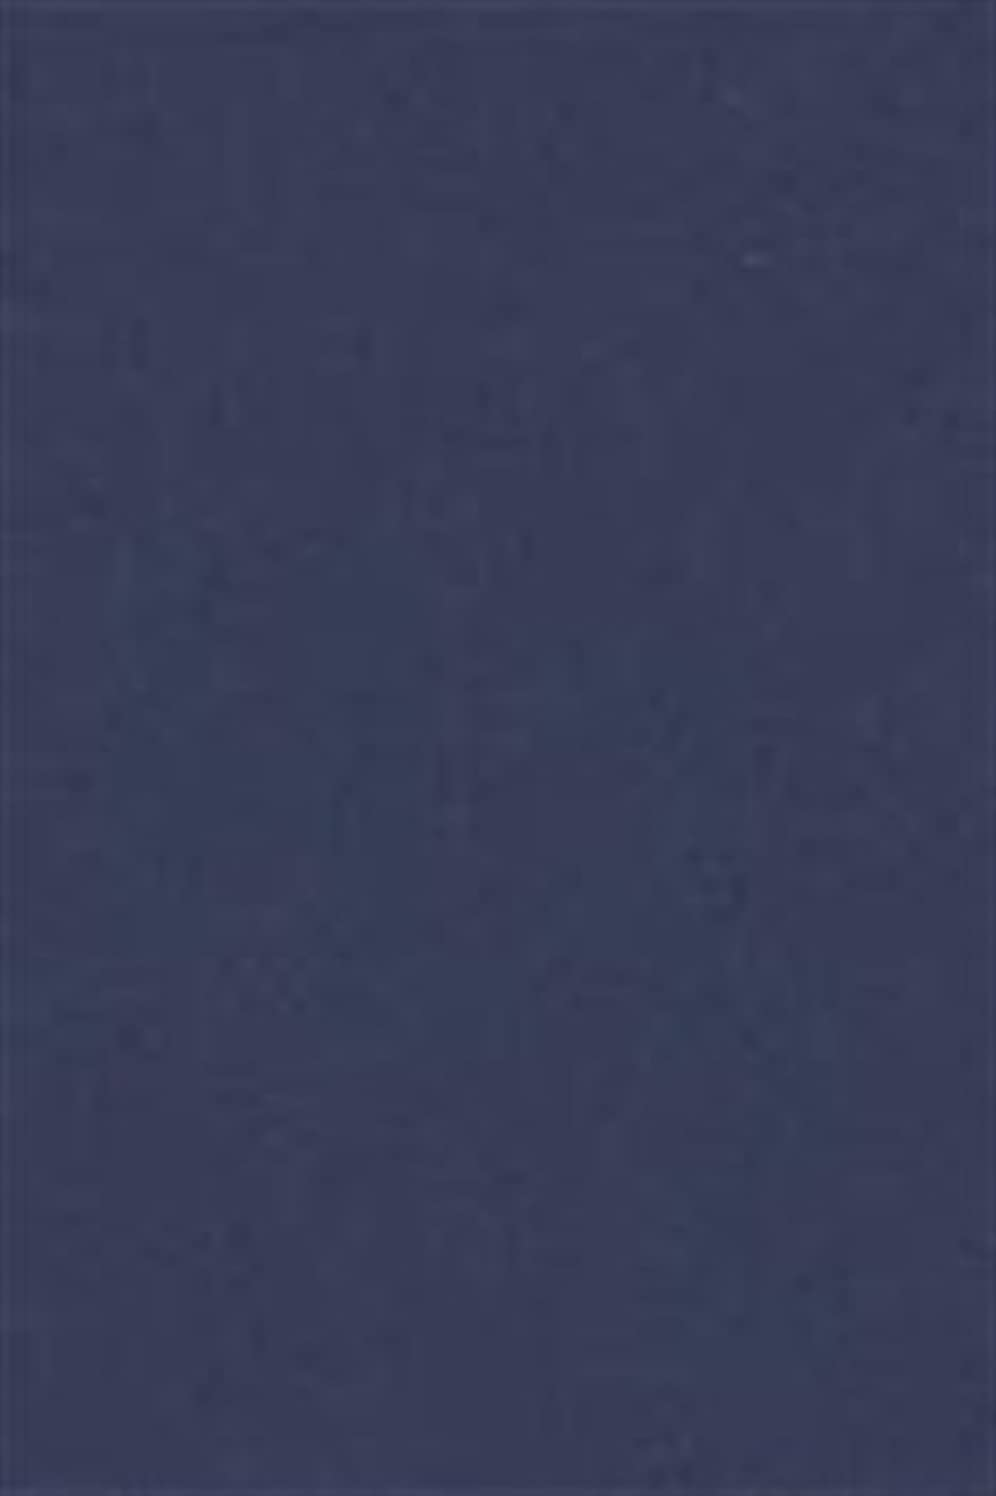 Vanuguard 2232 A4 Card - Navy Blue